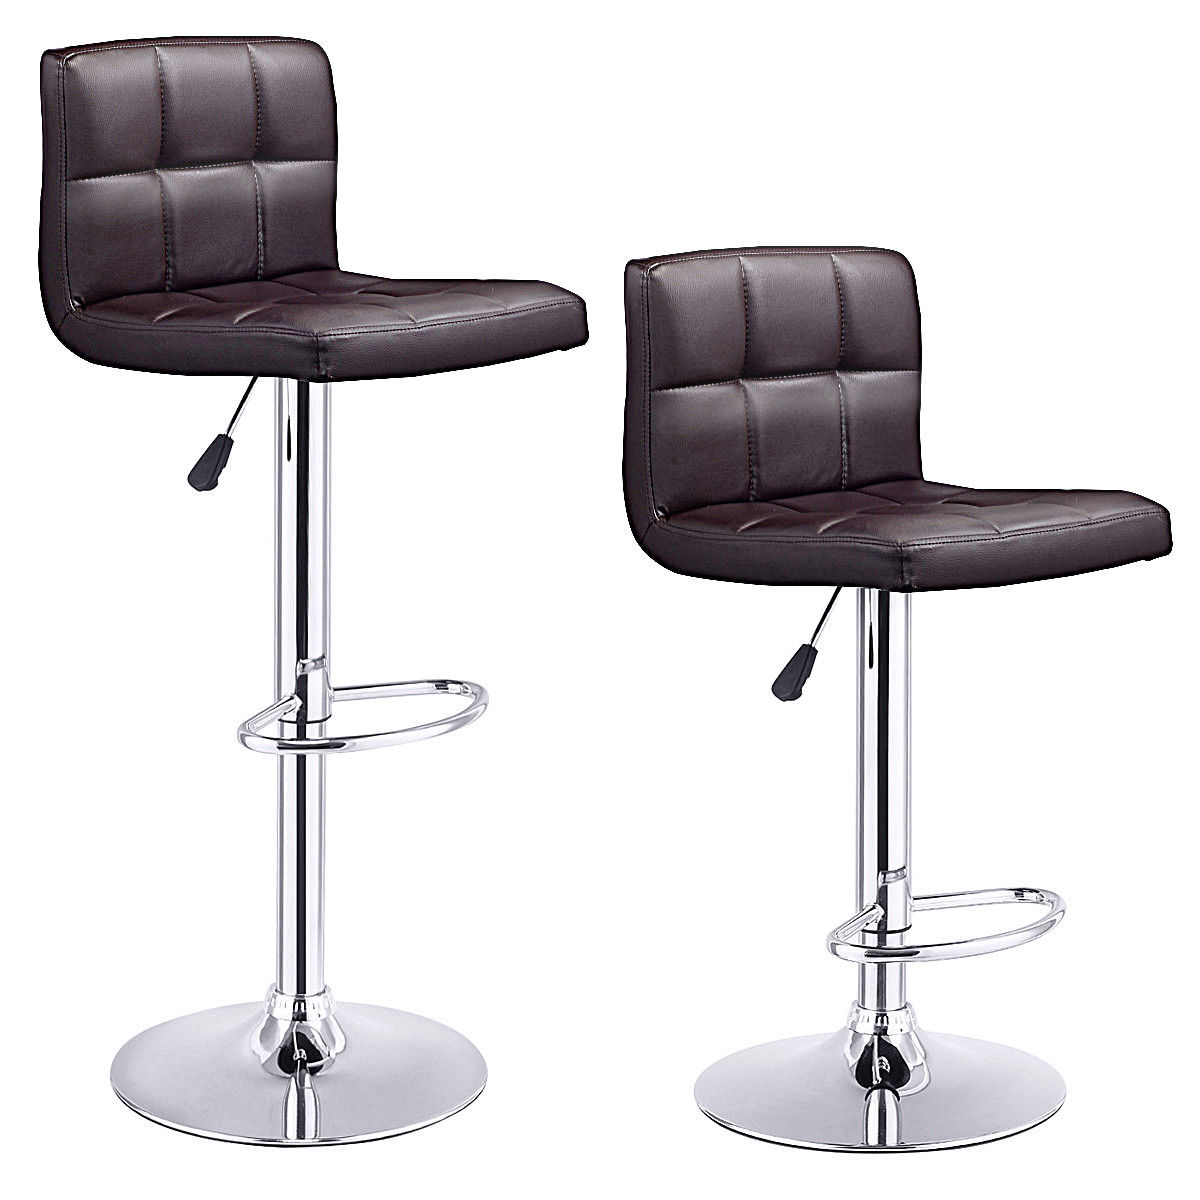 Costway Set Of 2 Bar Stools PU Leather Adjustable Barstool Swivel Pub Chairs Brown